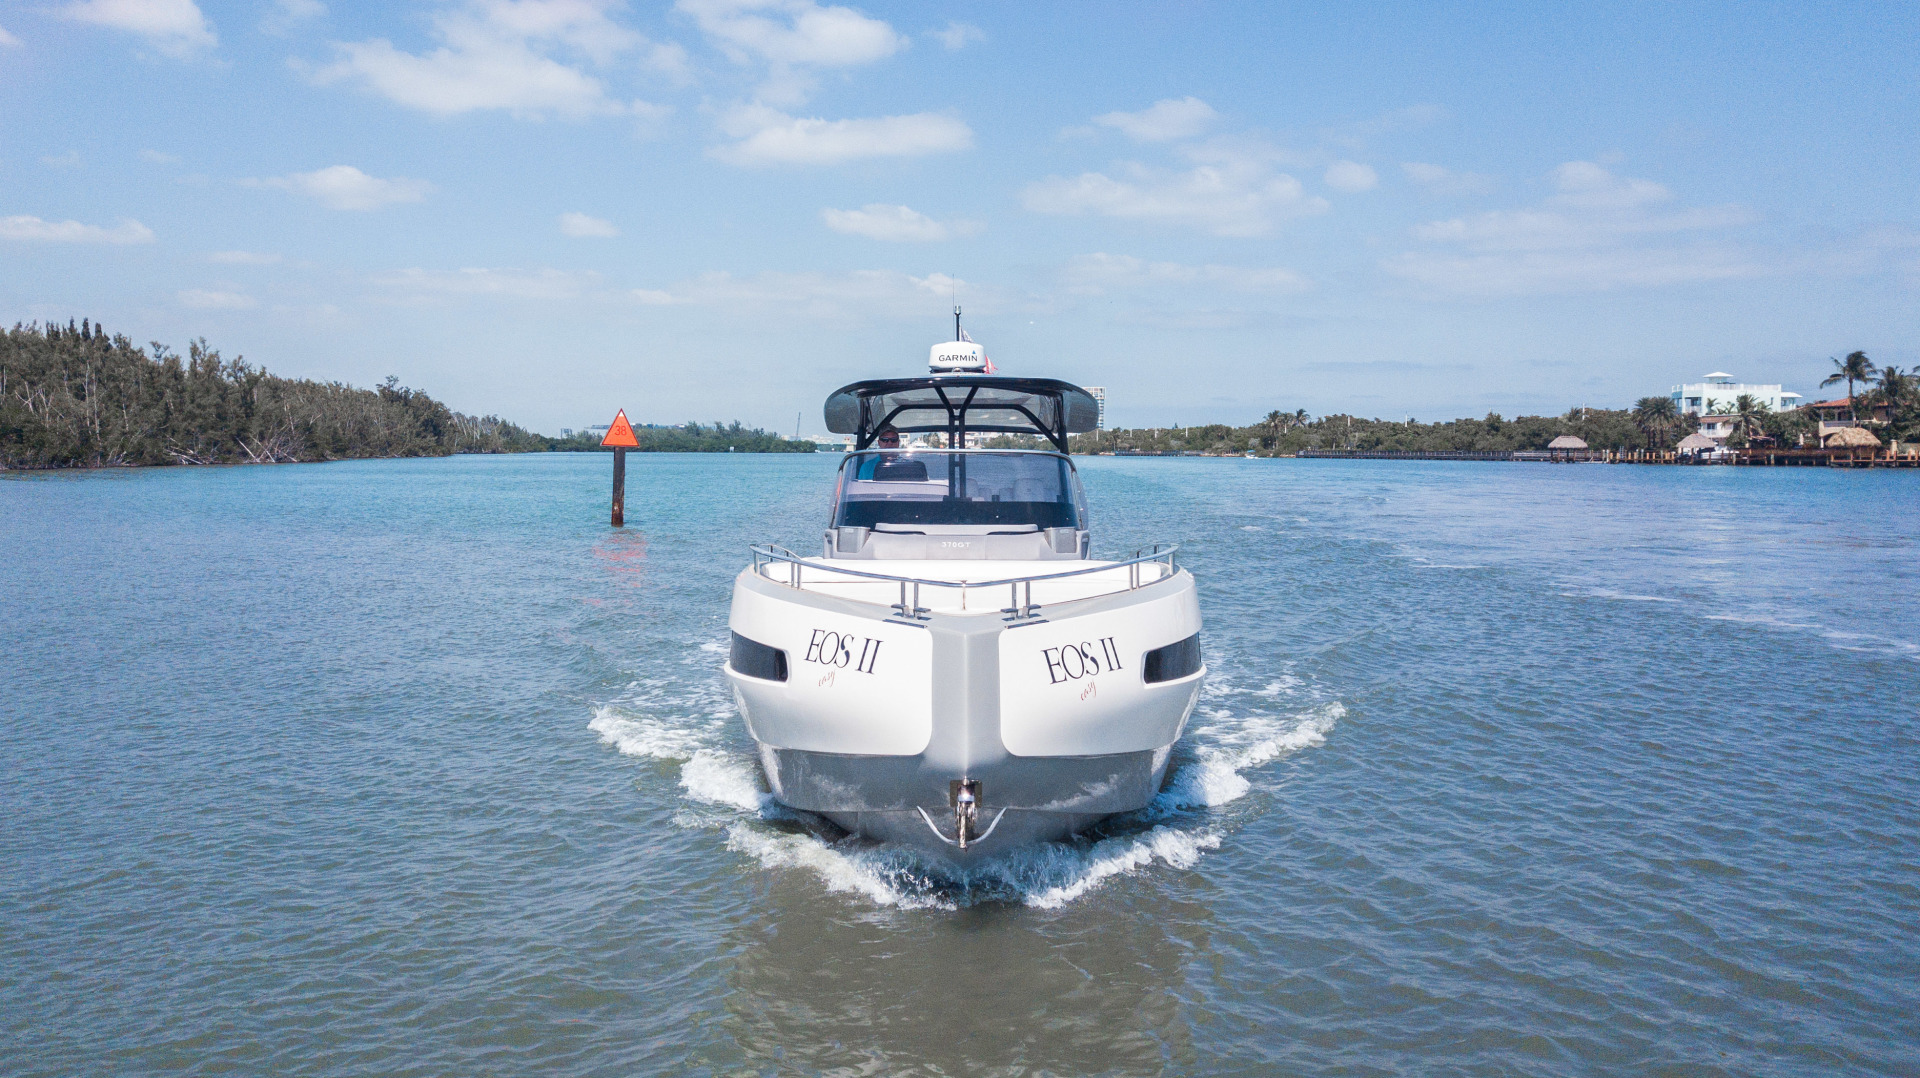 Invictus-370 GT 2018-EOS II Fort Lauderdale-Florida-United States-Bow Profile-1629989 | Thumbnail